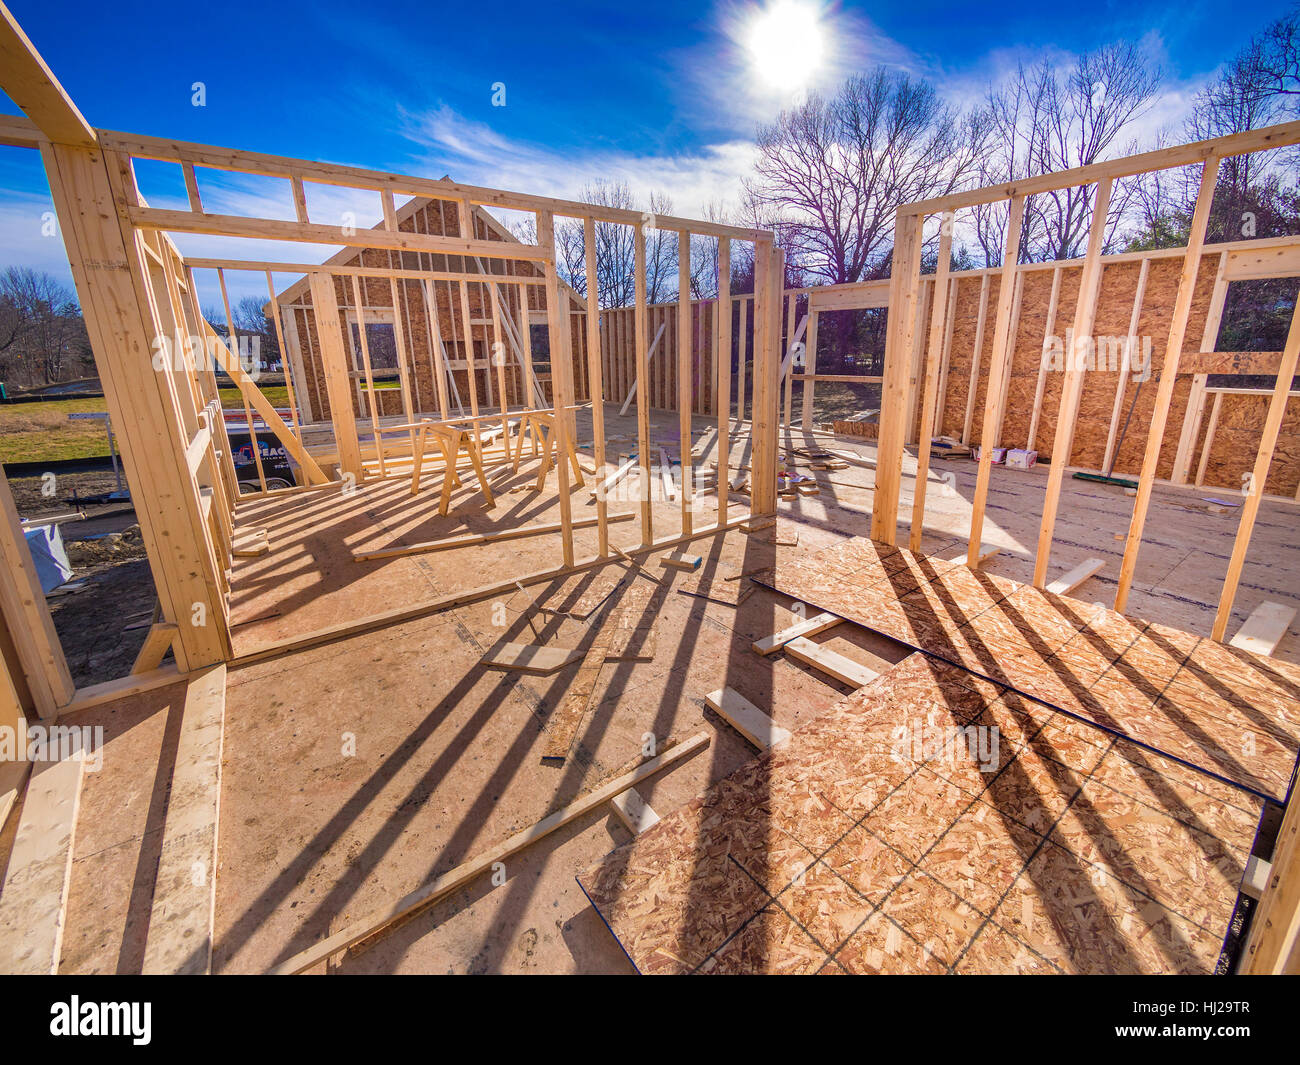 House Building Build Wood New Frame Carpentry